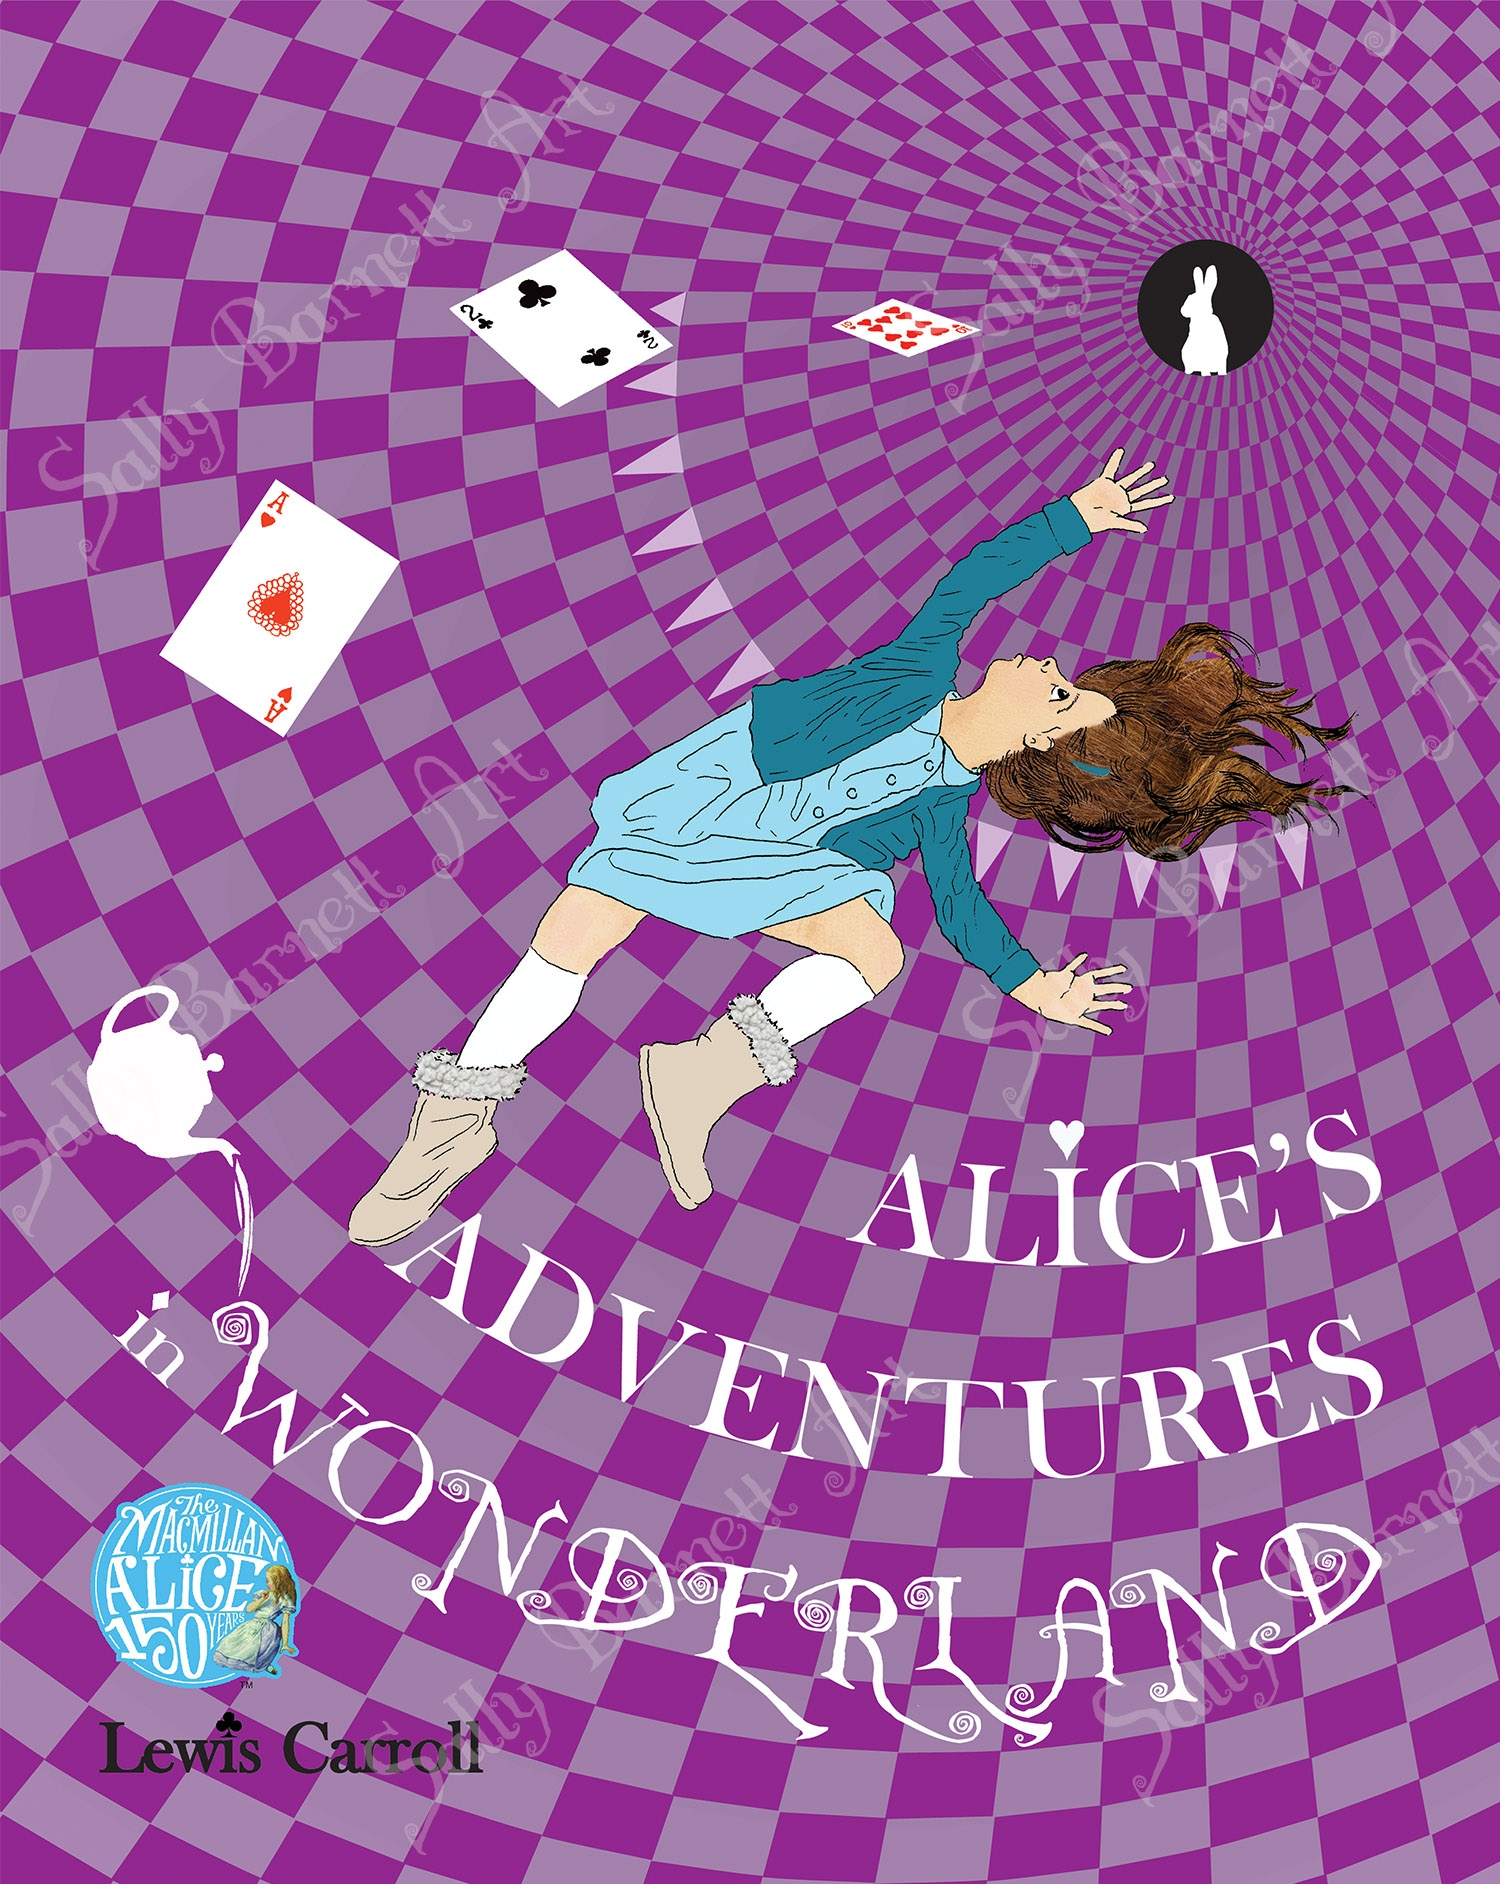 alice falling down a vortex made up of purple squares with a teapoit and rabbit waiting for her at the bottom